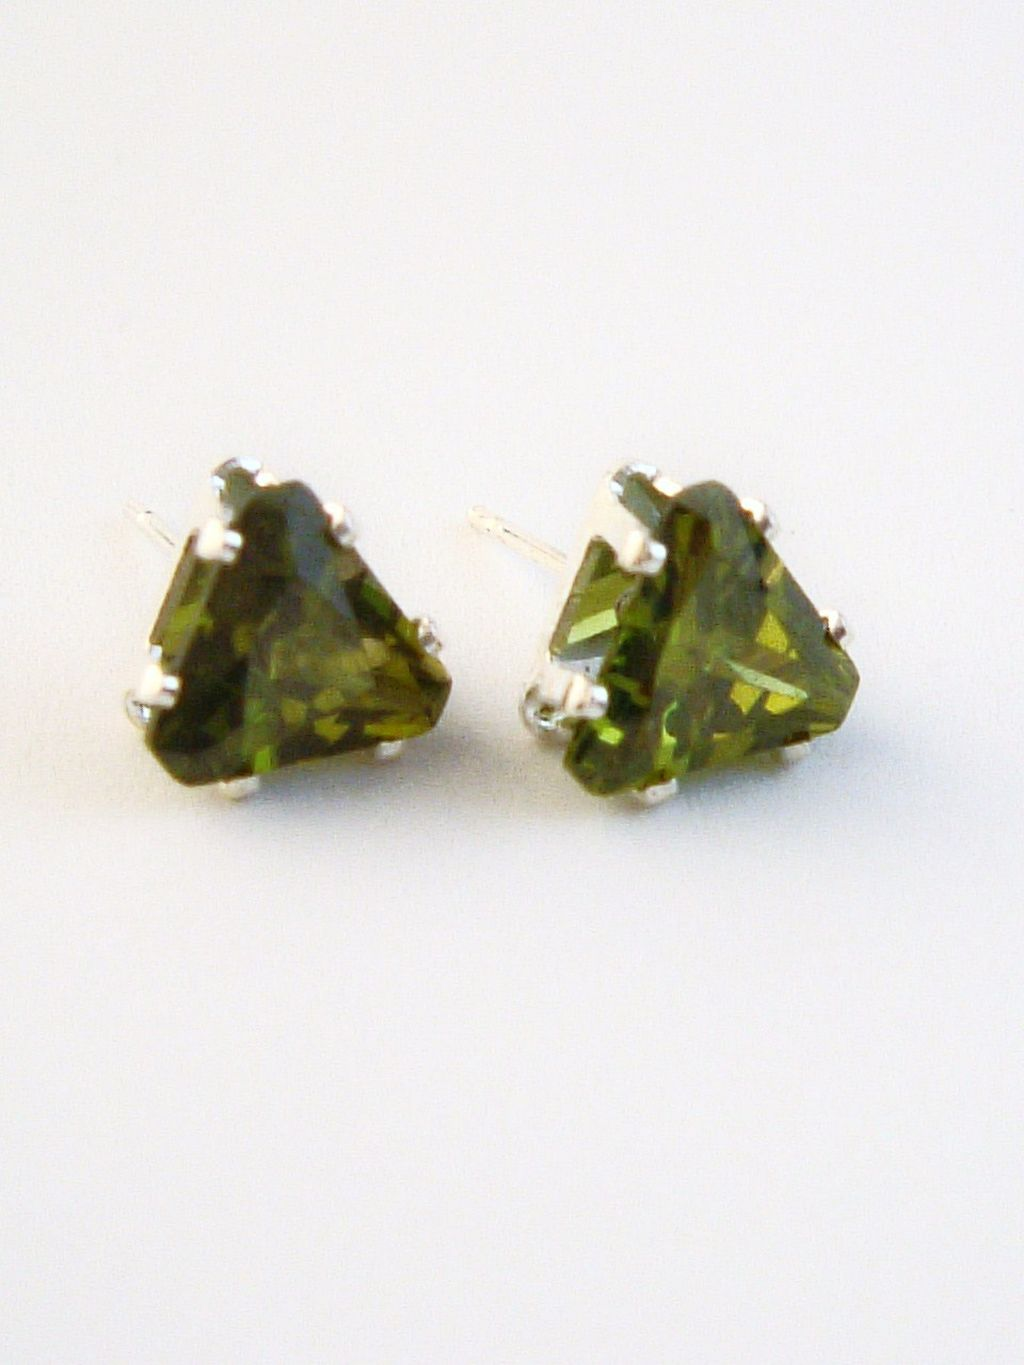 Peridot Triangle Cut Silver Stud Earrings Genuine CZ Cubic Zirconia